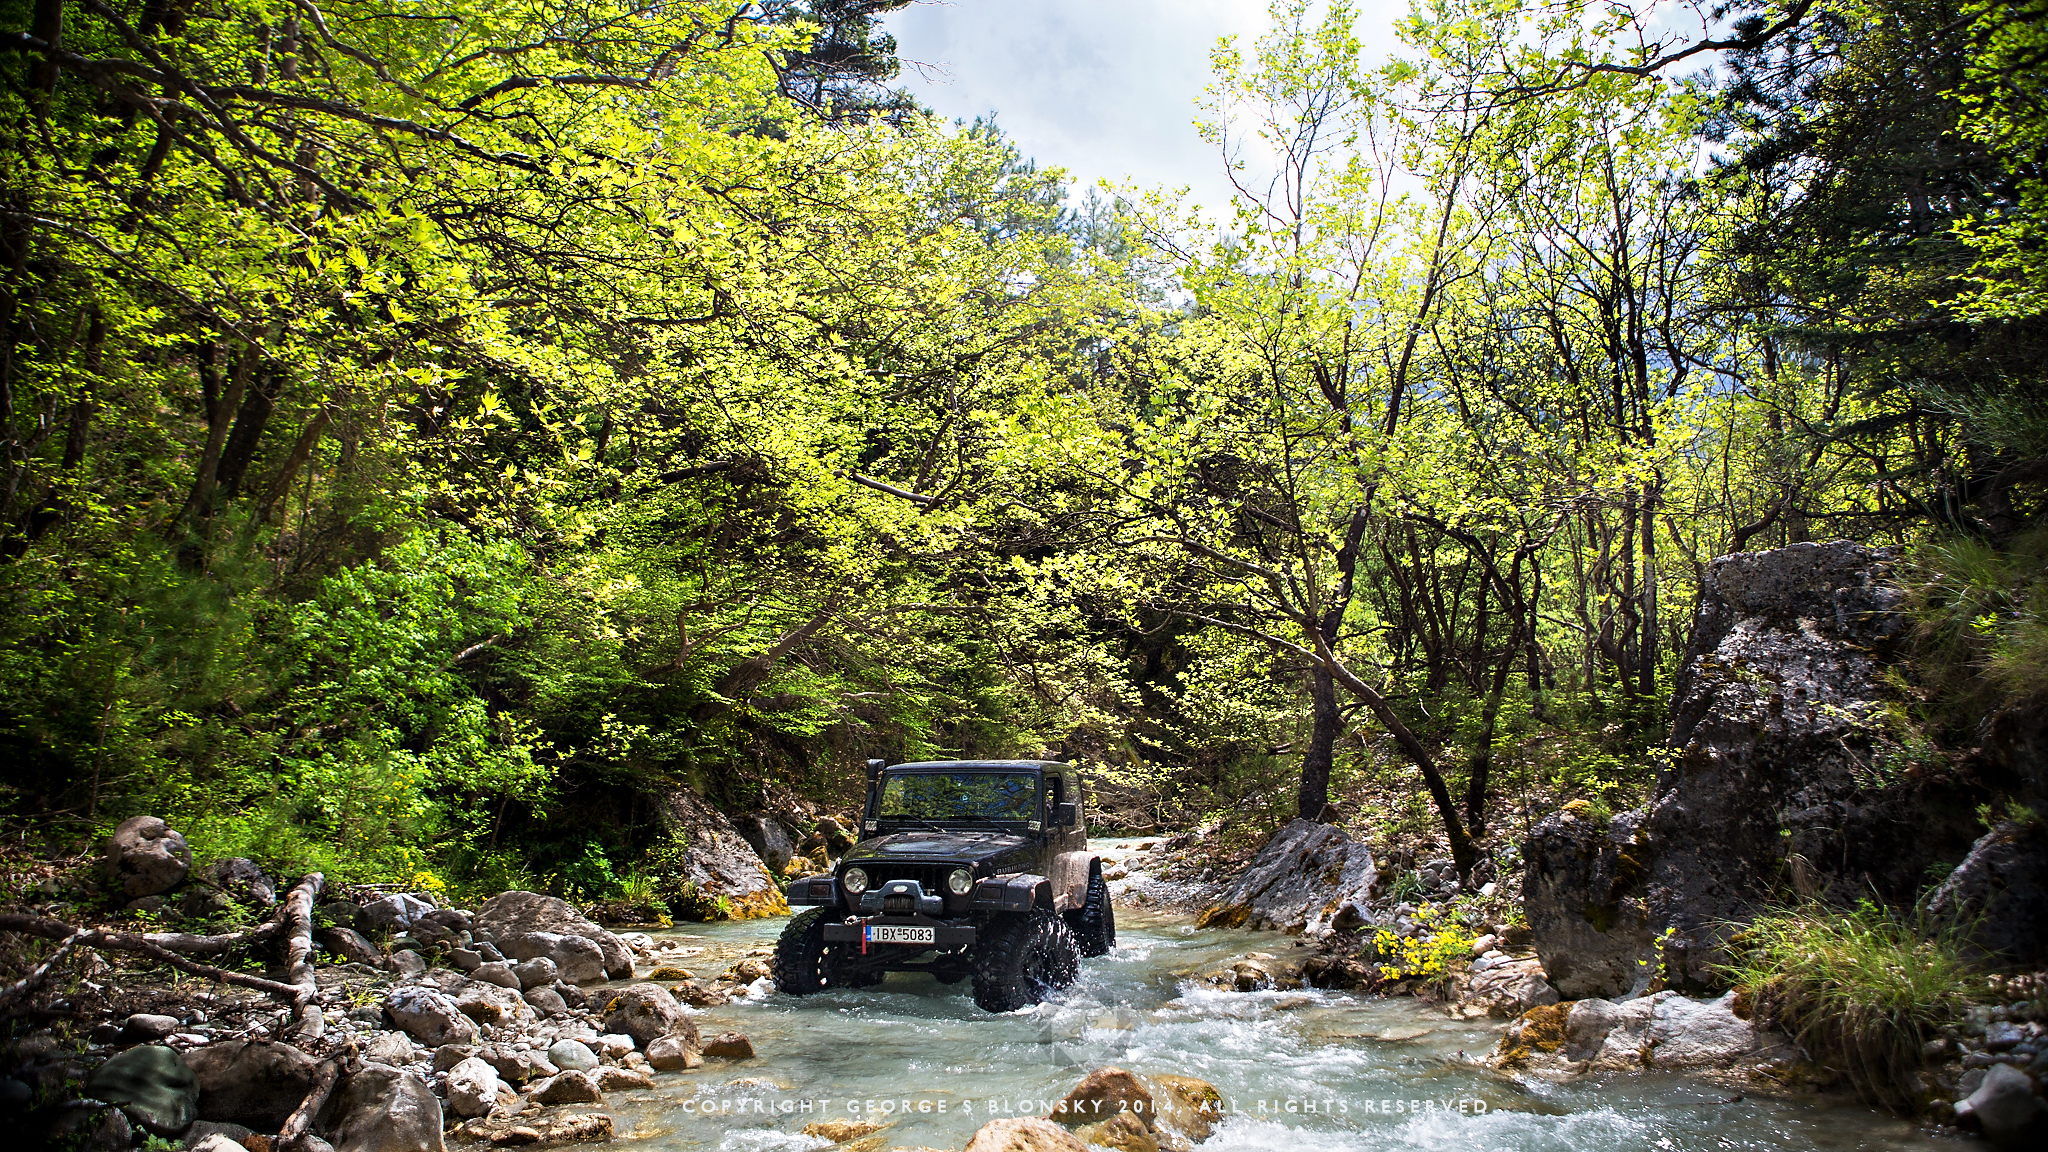 Our pathfinder Panos tests out a stretch of river before all commit to the river...